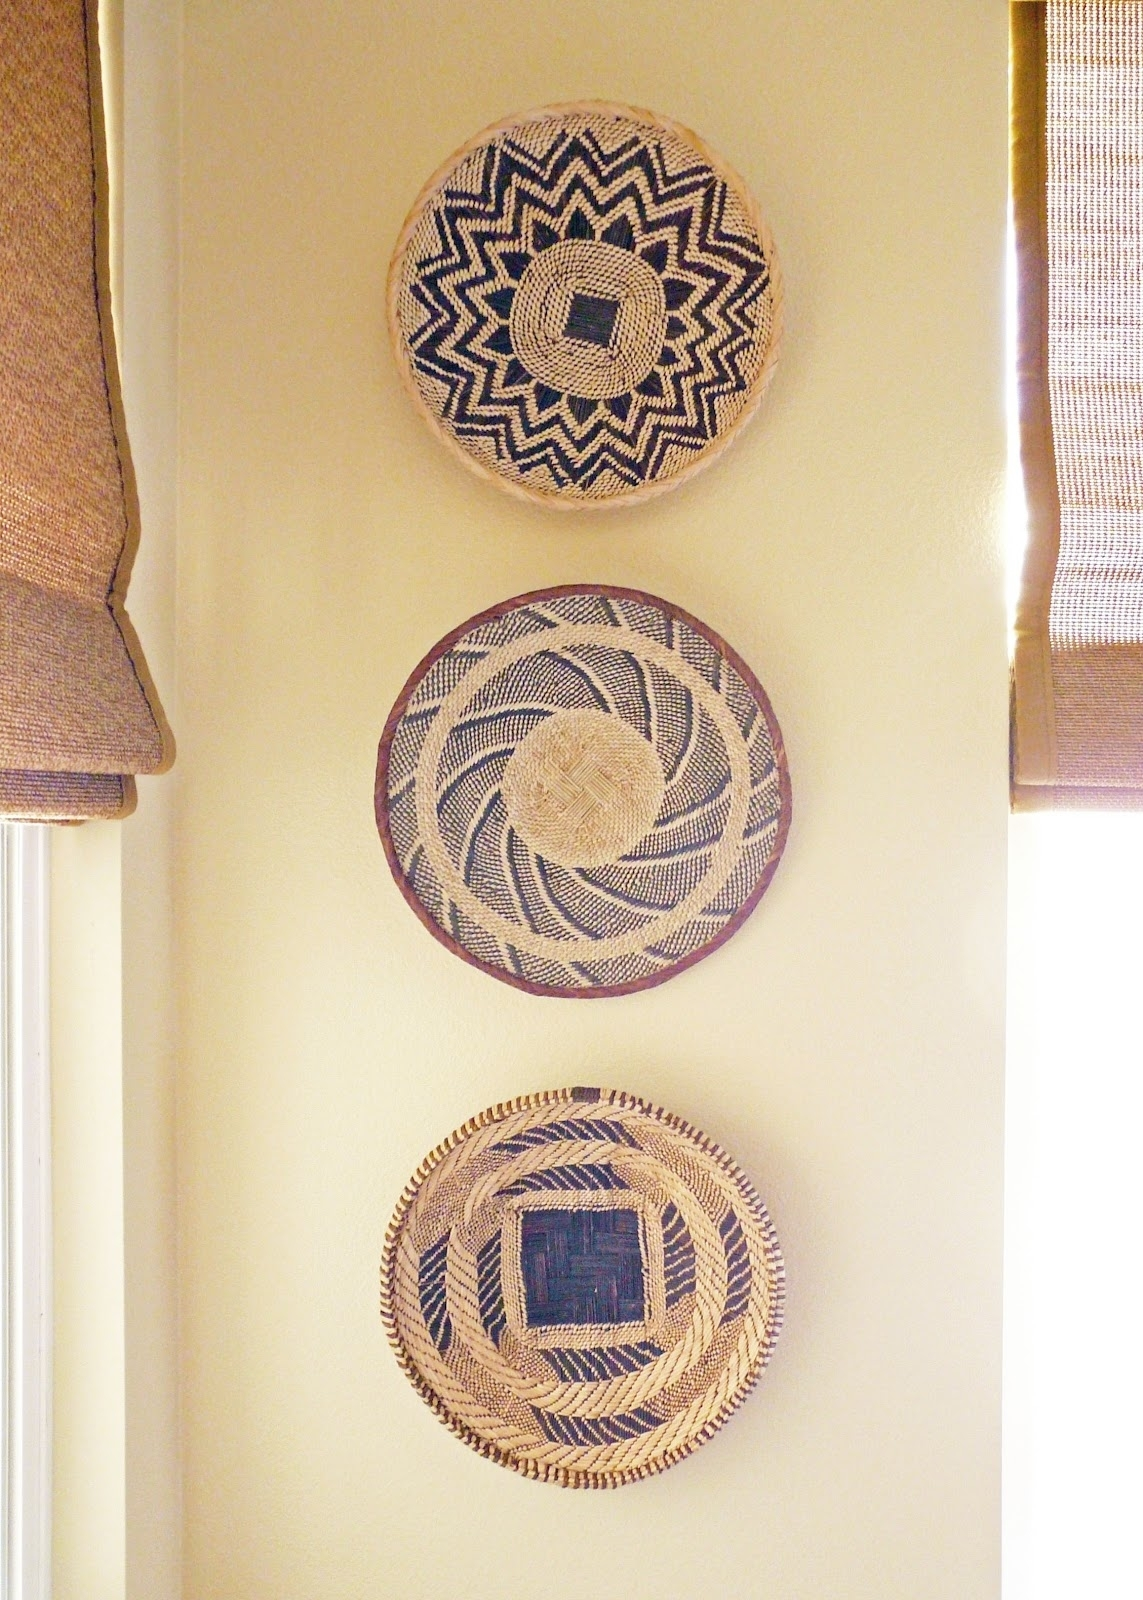 Wall Decor: Good Look Baskets As Wall Decor Woven Wall Baskets With Regard To 2018 African Wall Accents (View 8 of 15)